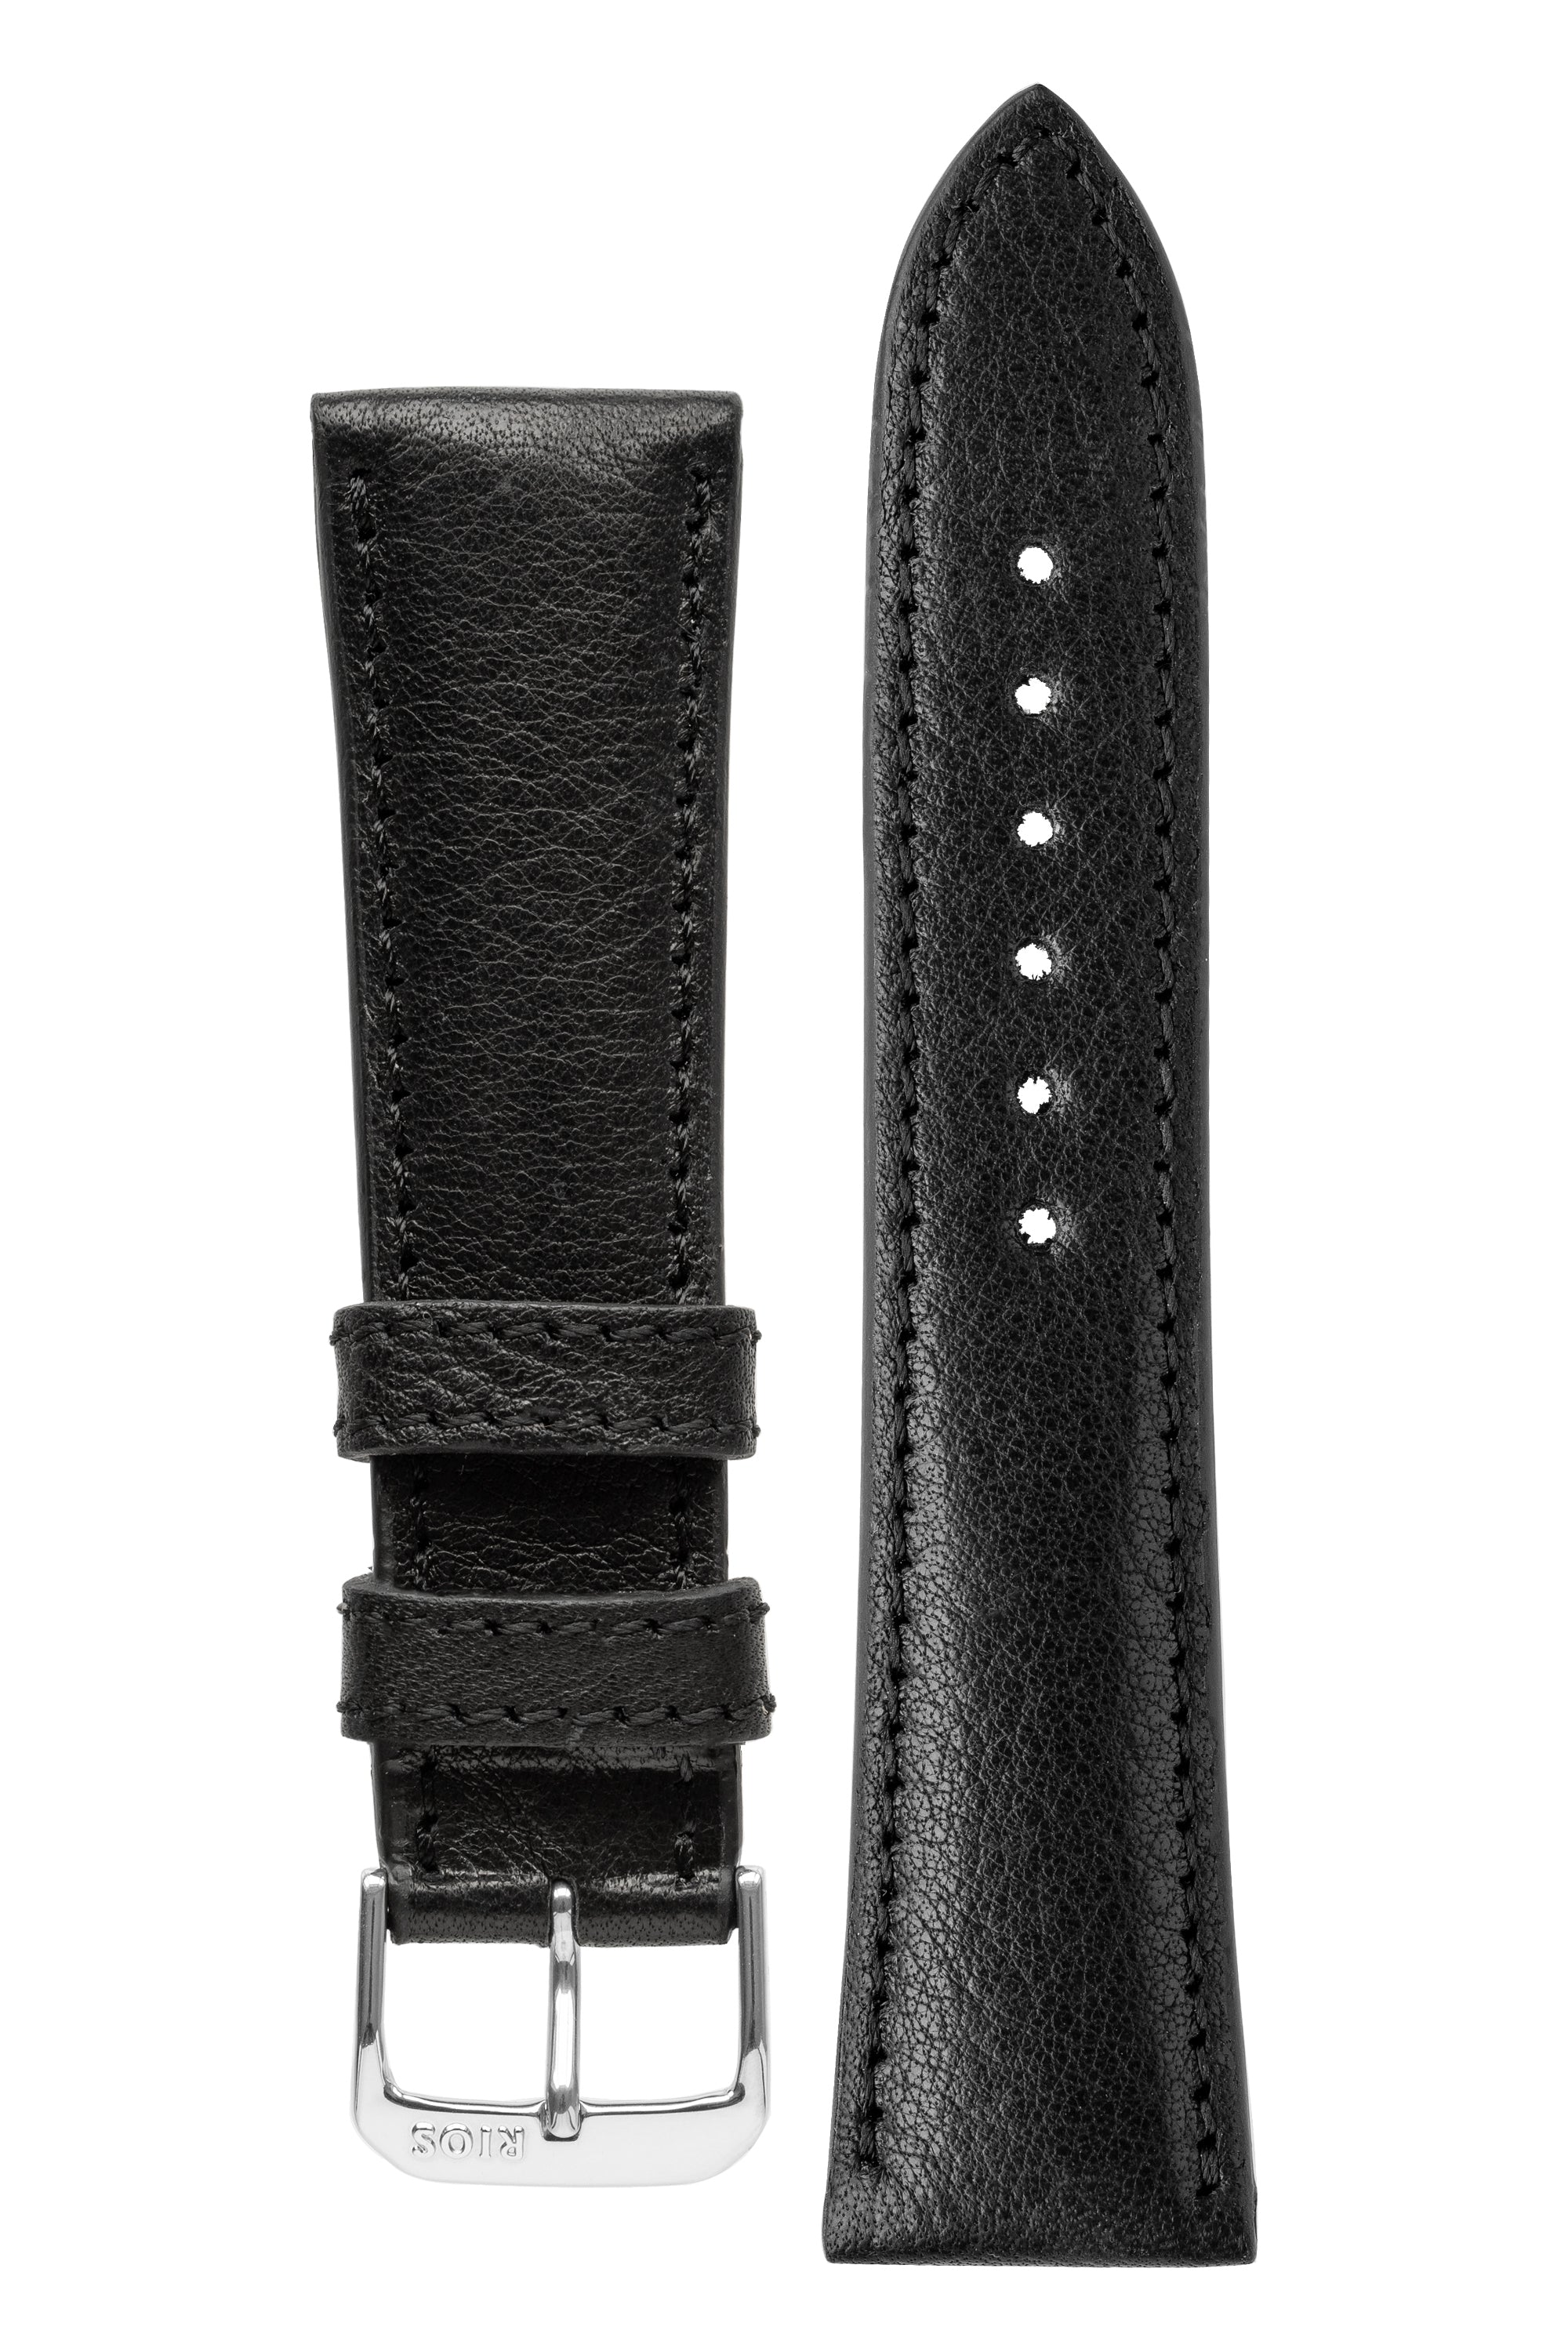 Rios1931 GARMISCH Organic Leather Watch Strap in BLACK